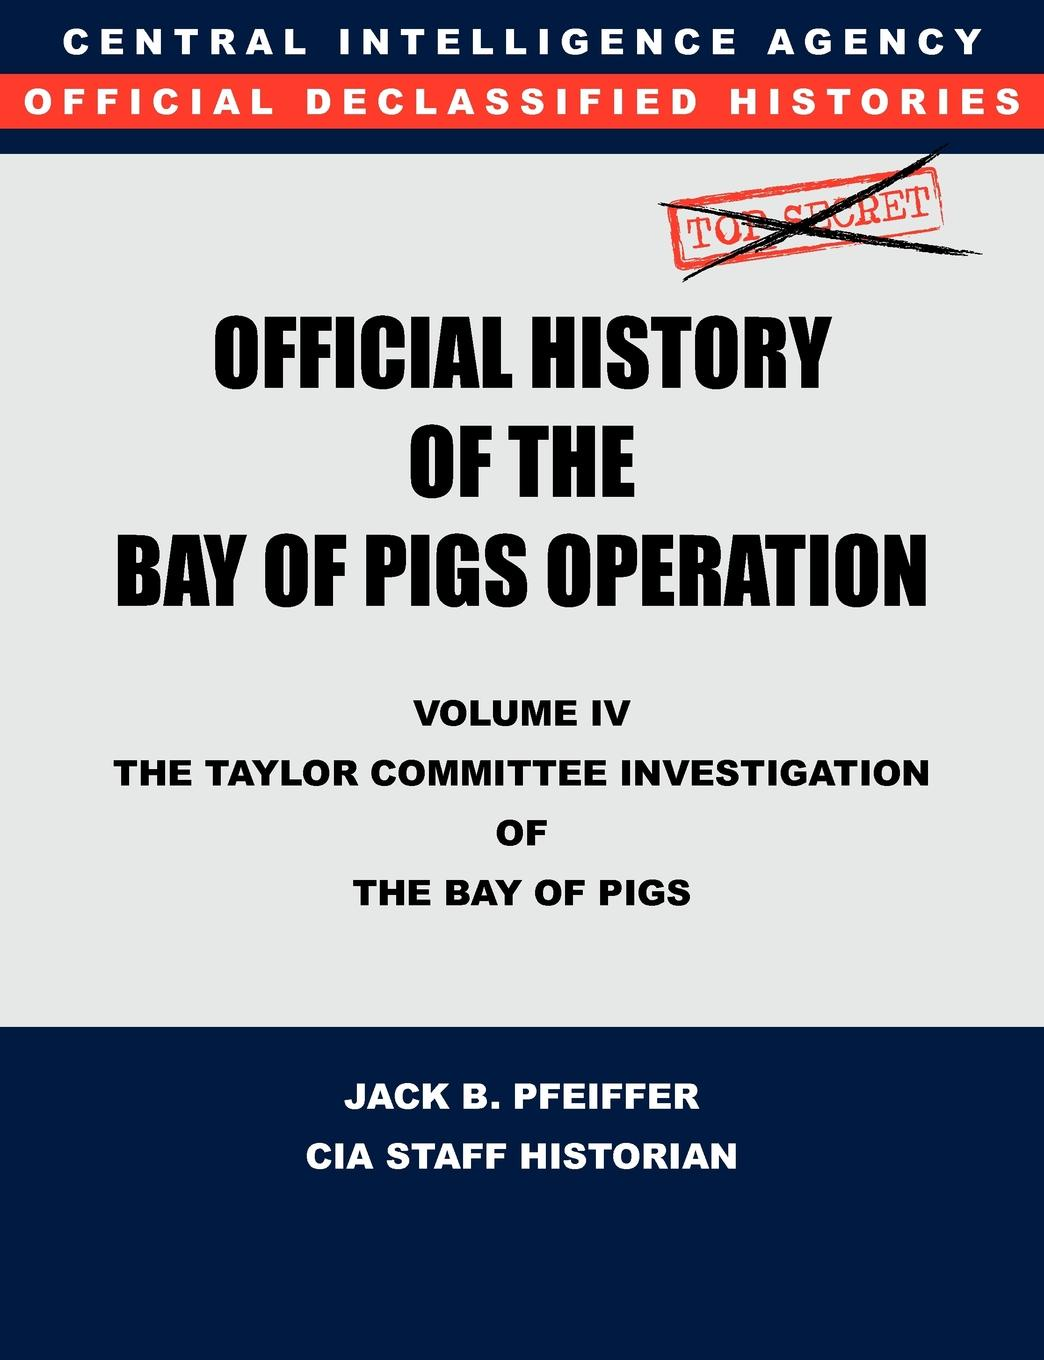 CIA History Office Staff, Jack B. Pfeiffer CIA Official History of the Bay of Pigs Invasion, Volume IV. The Taylor Committee Investigation of the Bay of Pigs